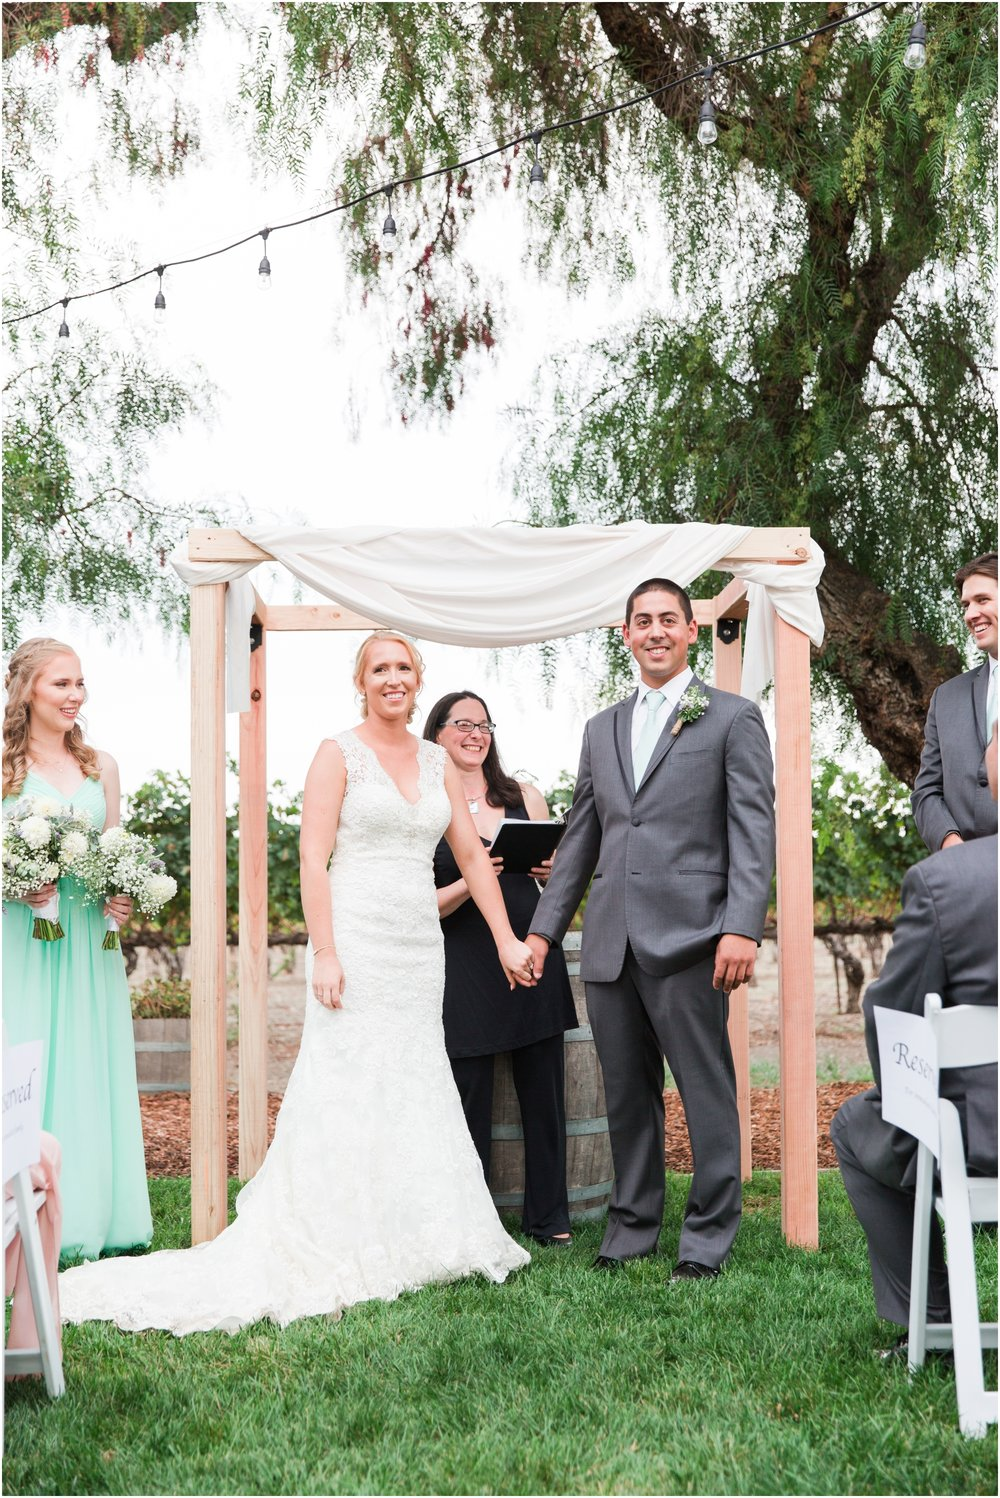 Retzlaff Winery wedding pictures by Briana Calderon Photography_2311.jpg